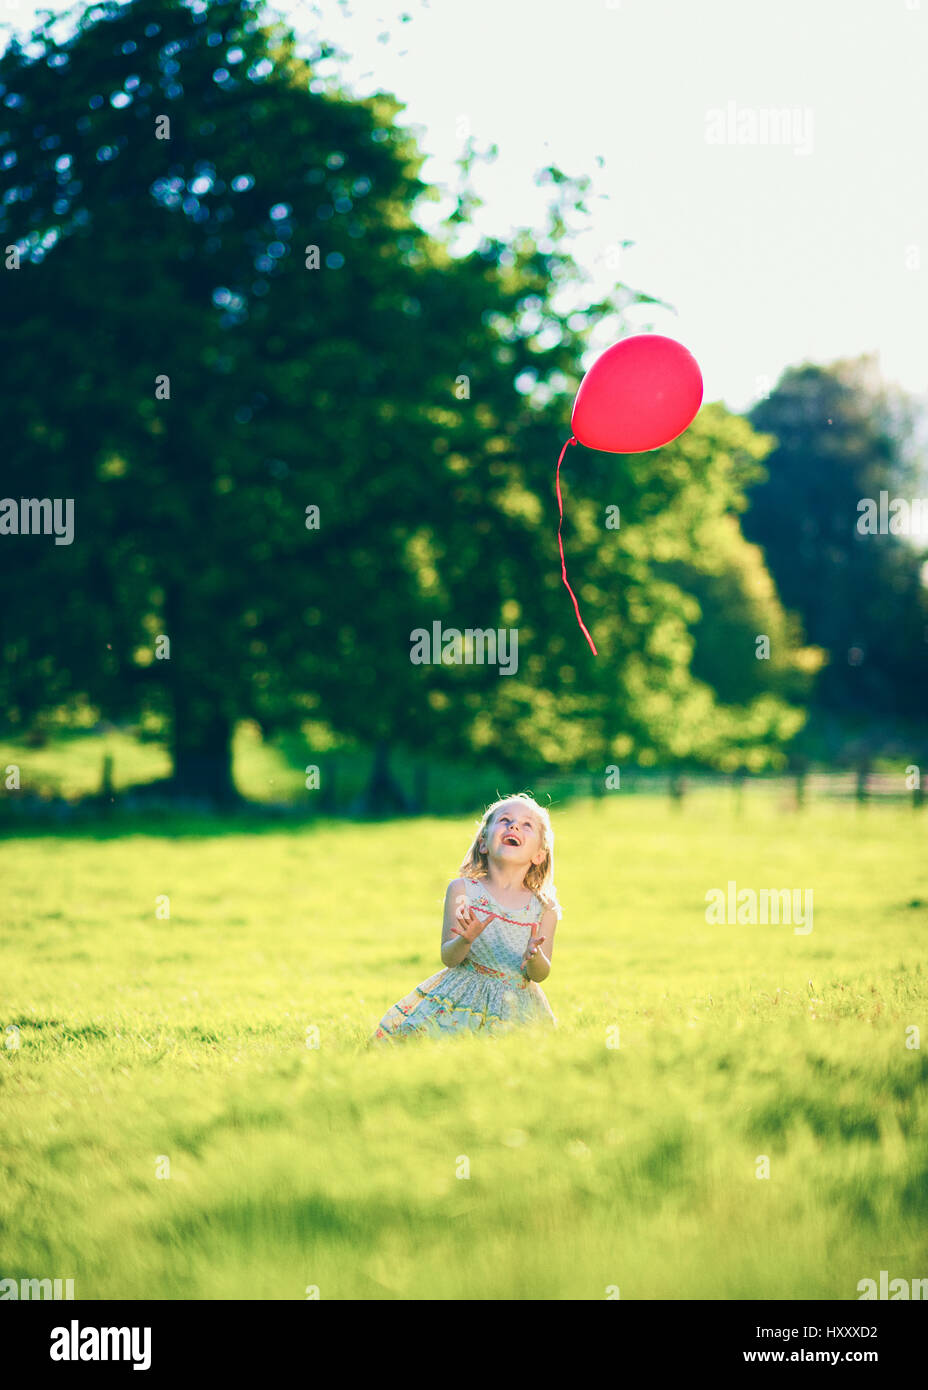 Blond girl letting go of a single red balloon in the Countryside - Stock Image